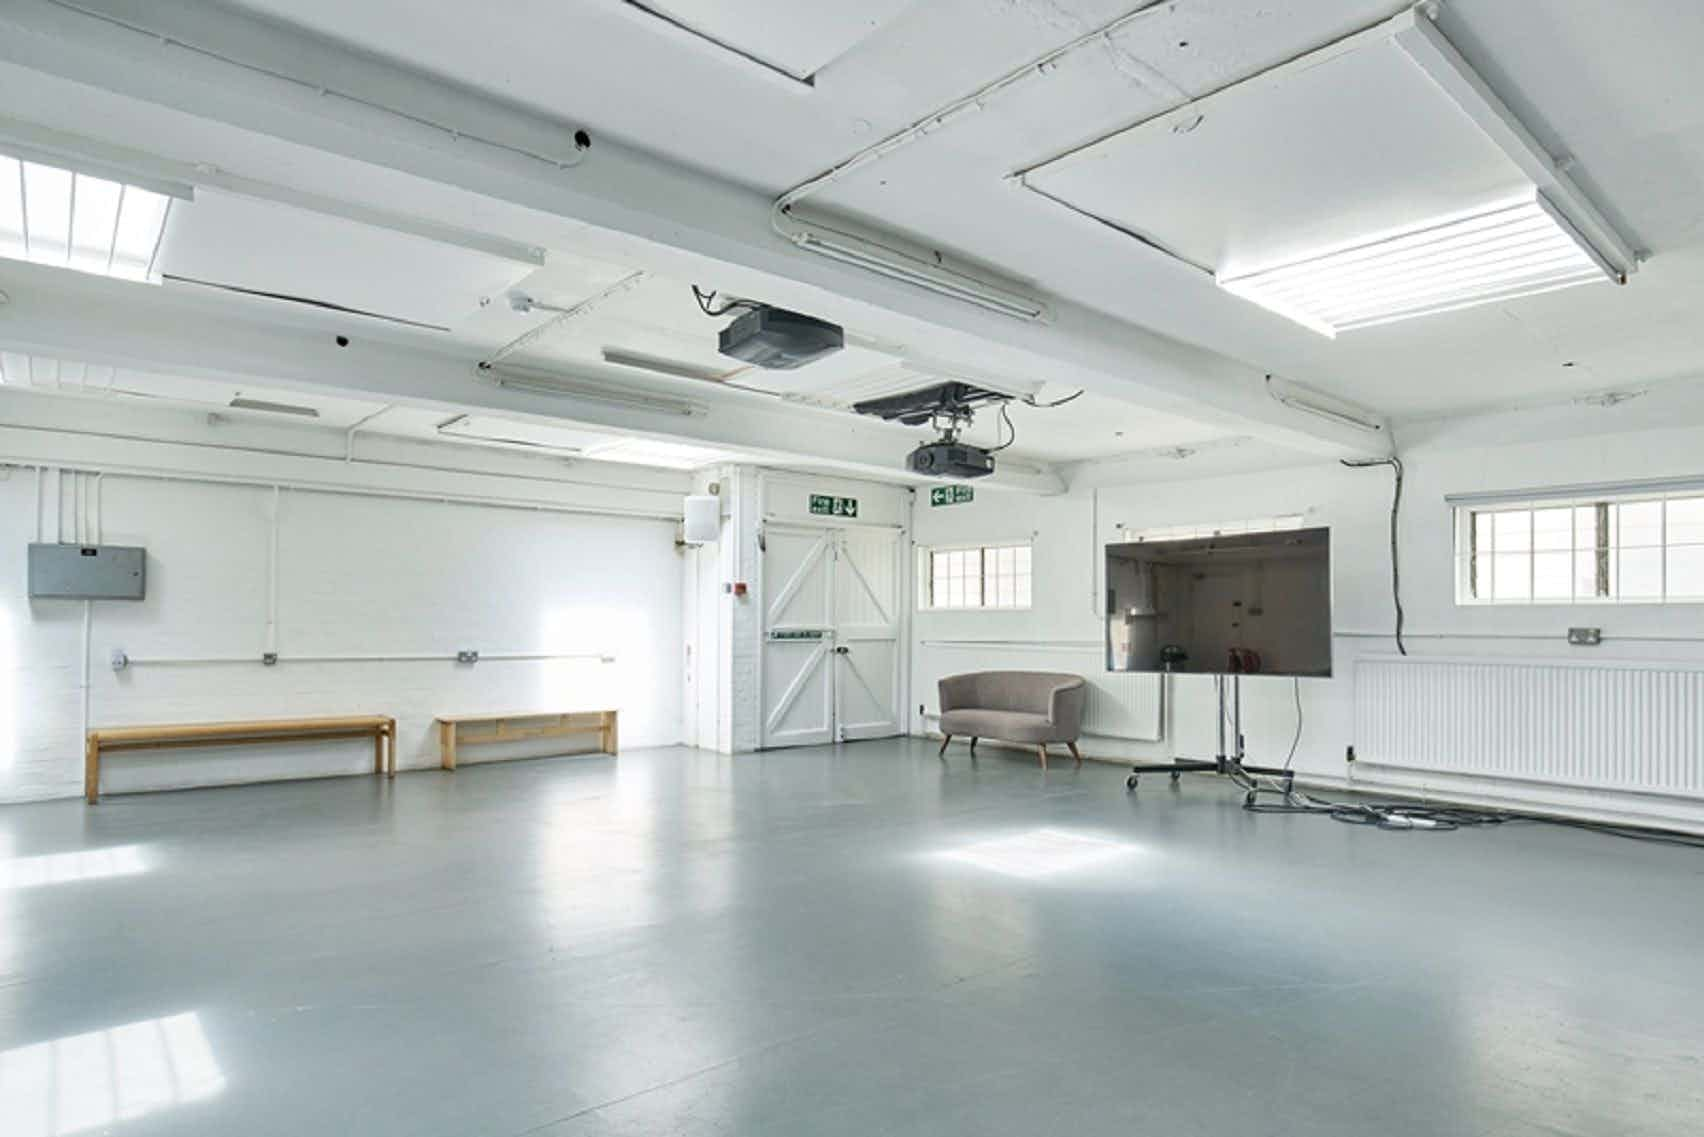 Studio, Institute of Contemporary Arts